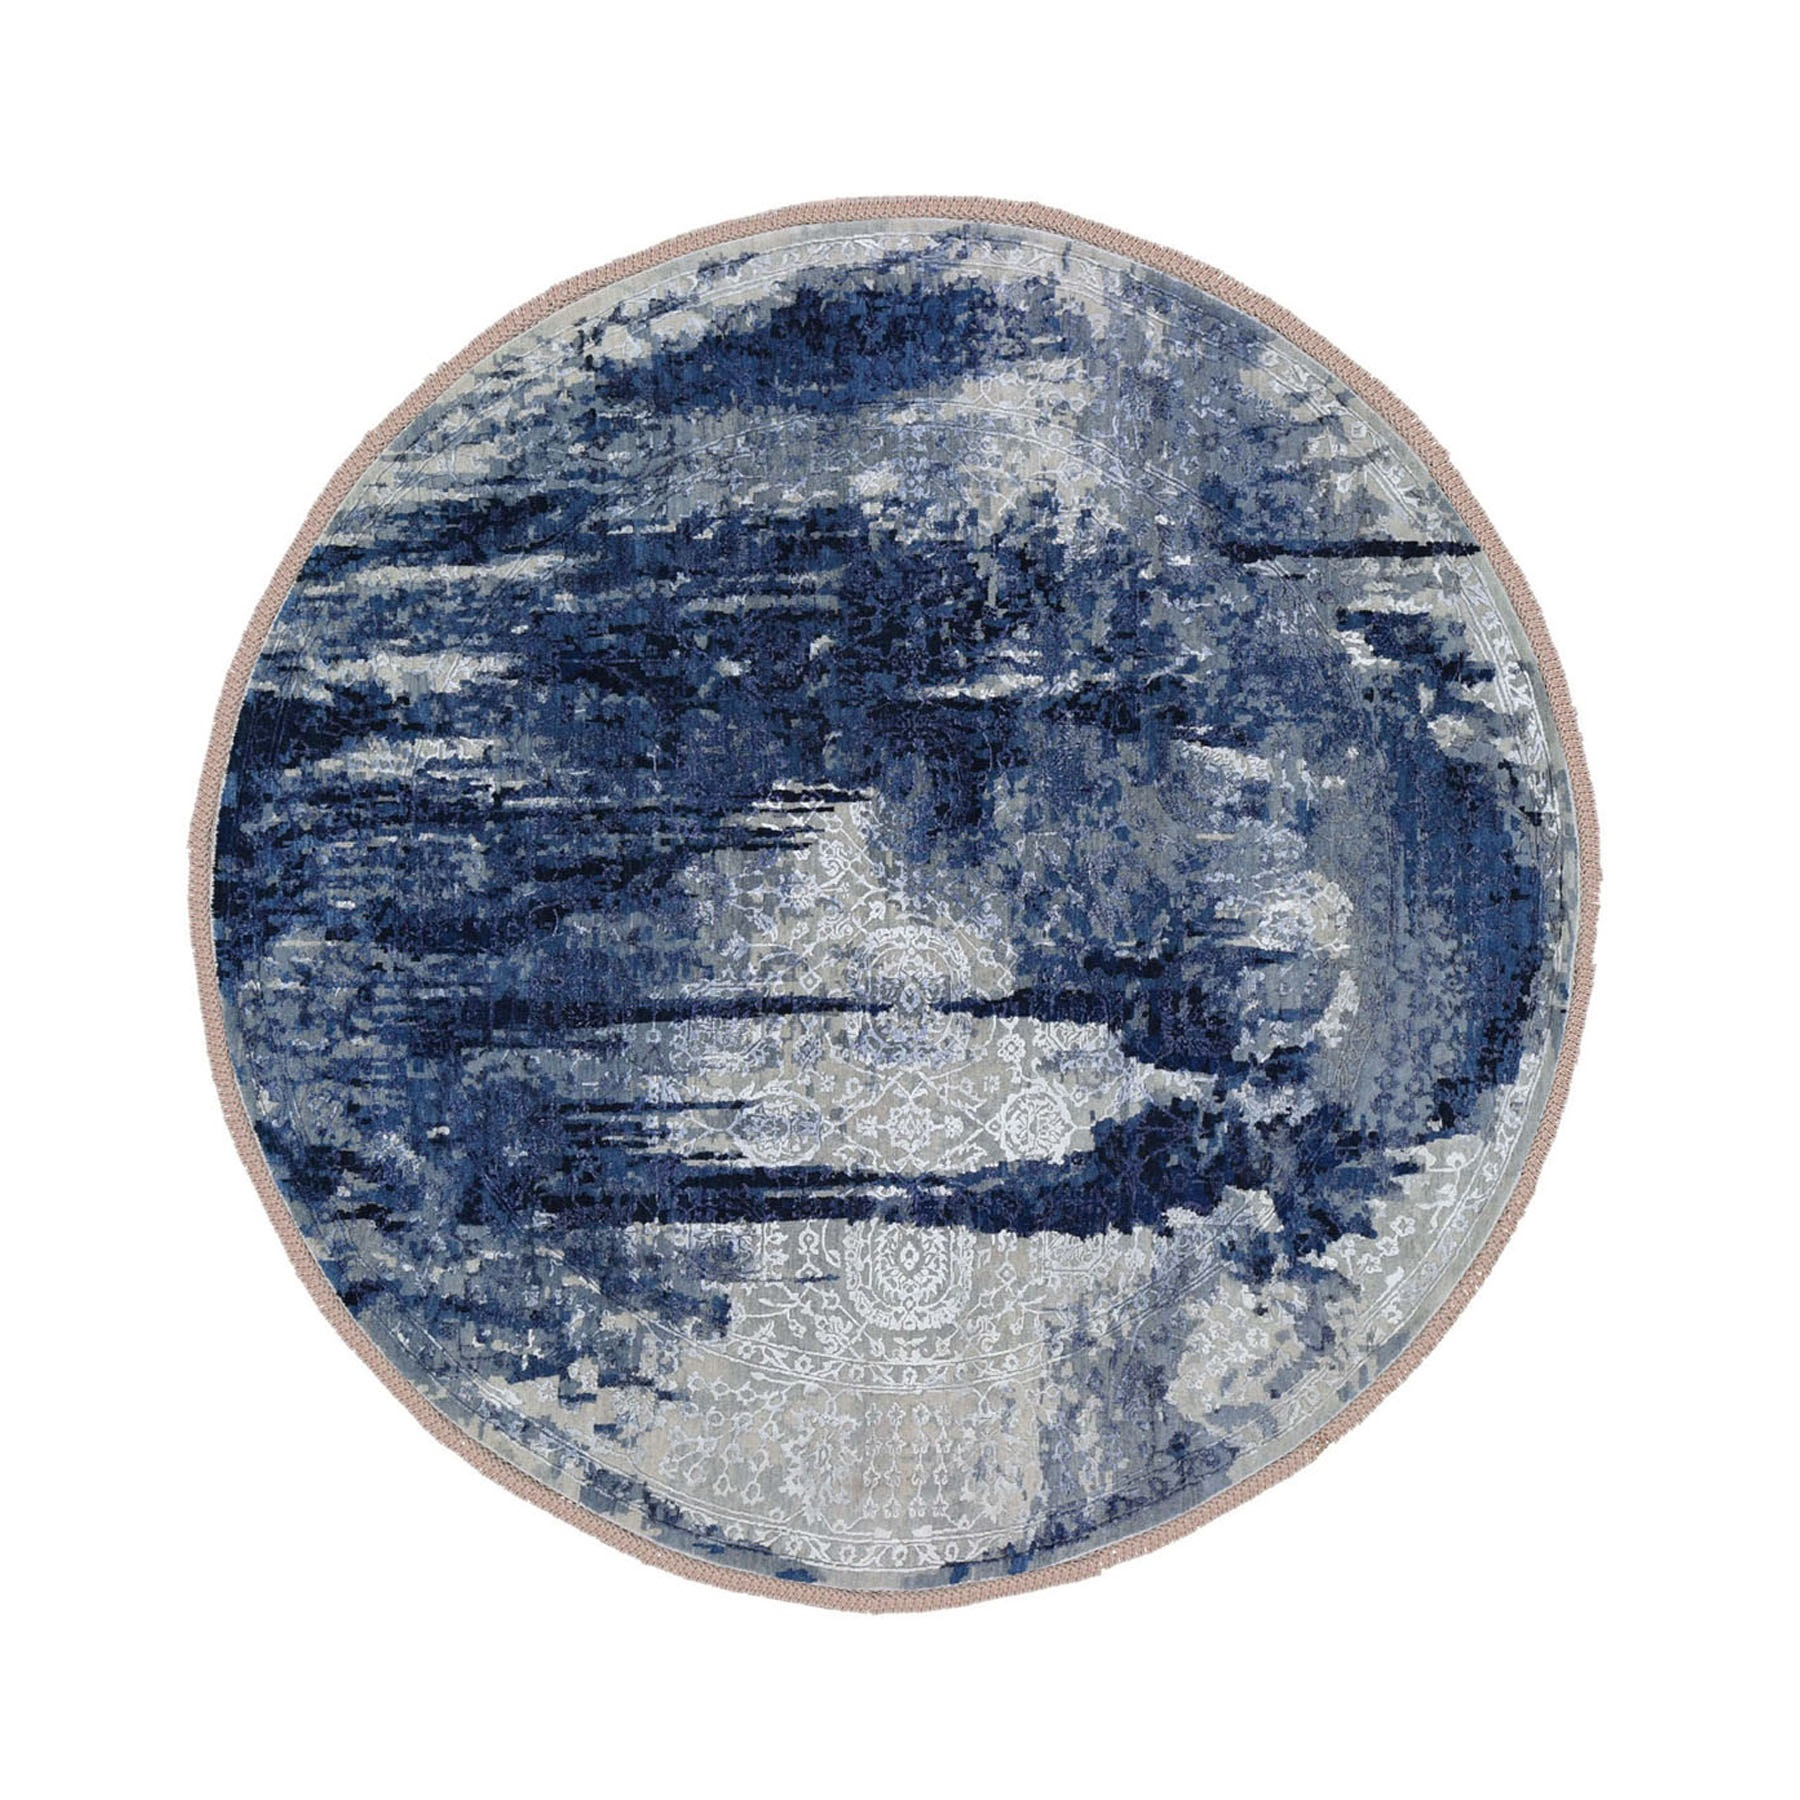 "11'9""x11'9"" Round Wool And Silk Shibori Design Tone On Tone Hand Knotted Oriental Rug"